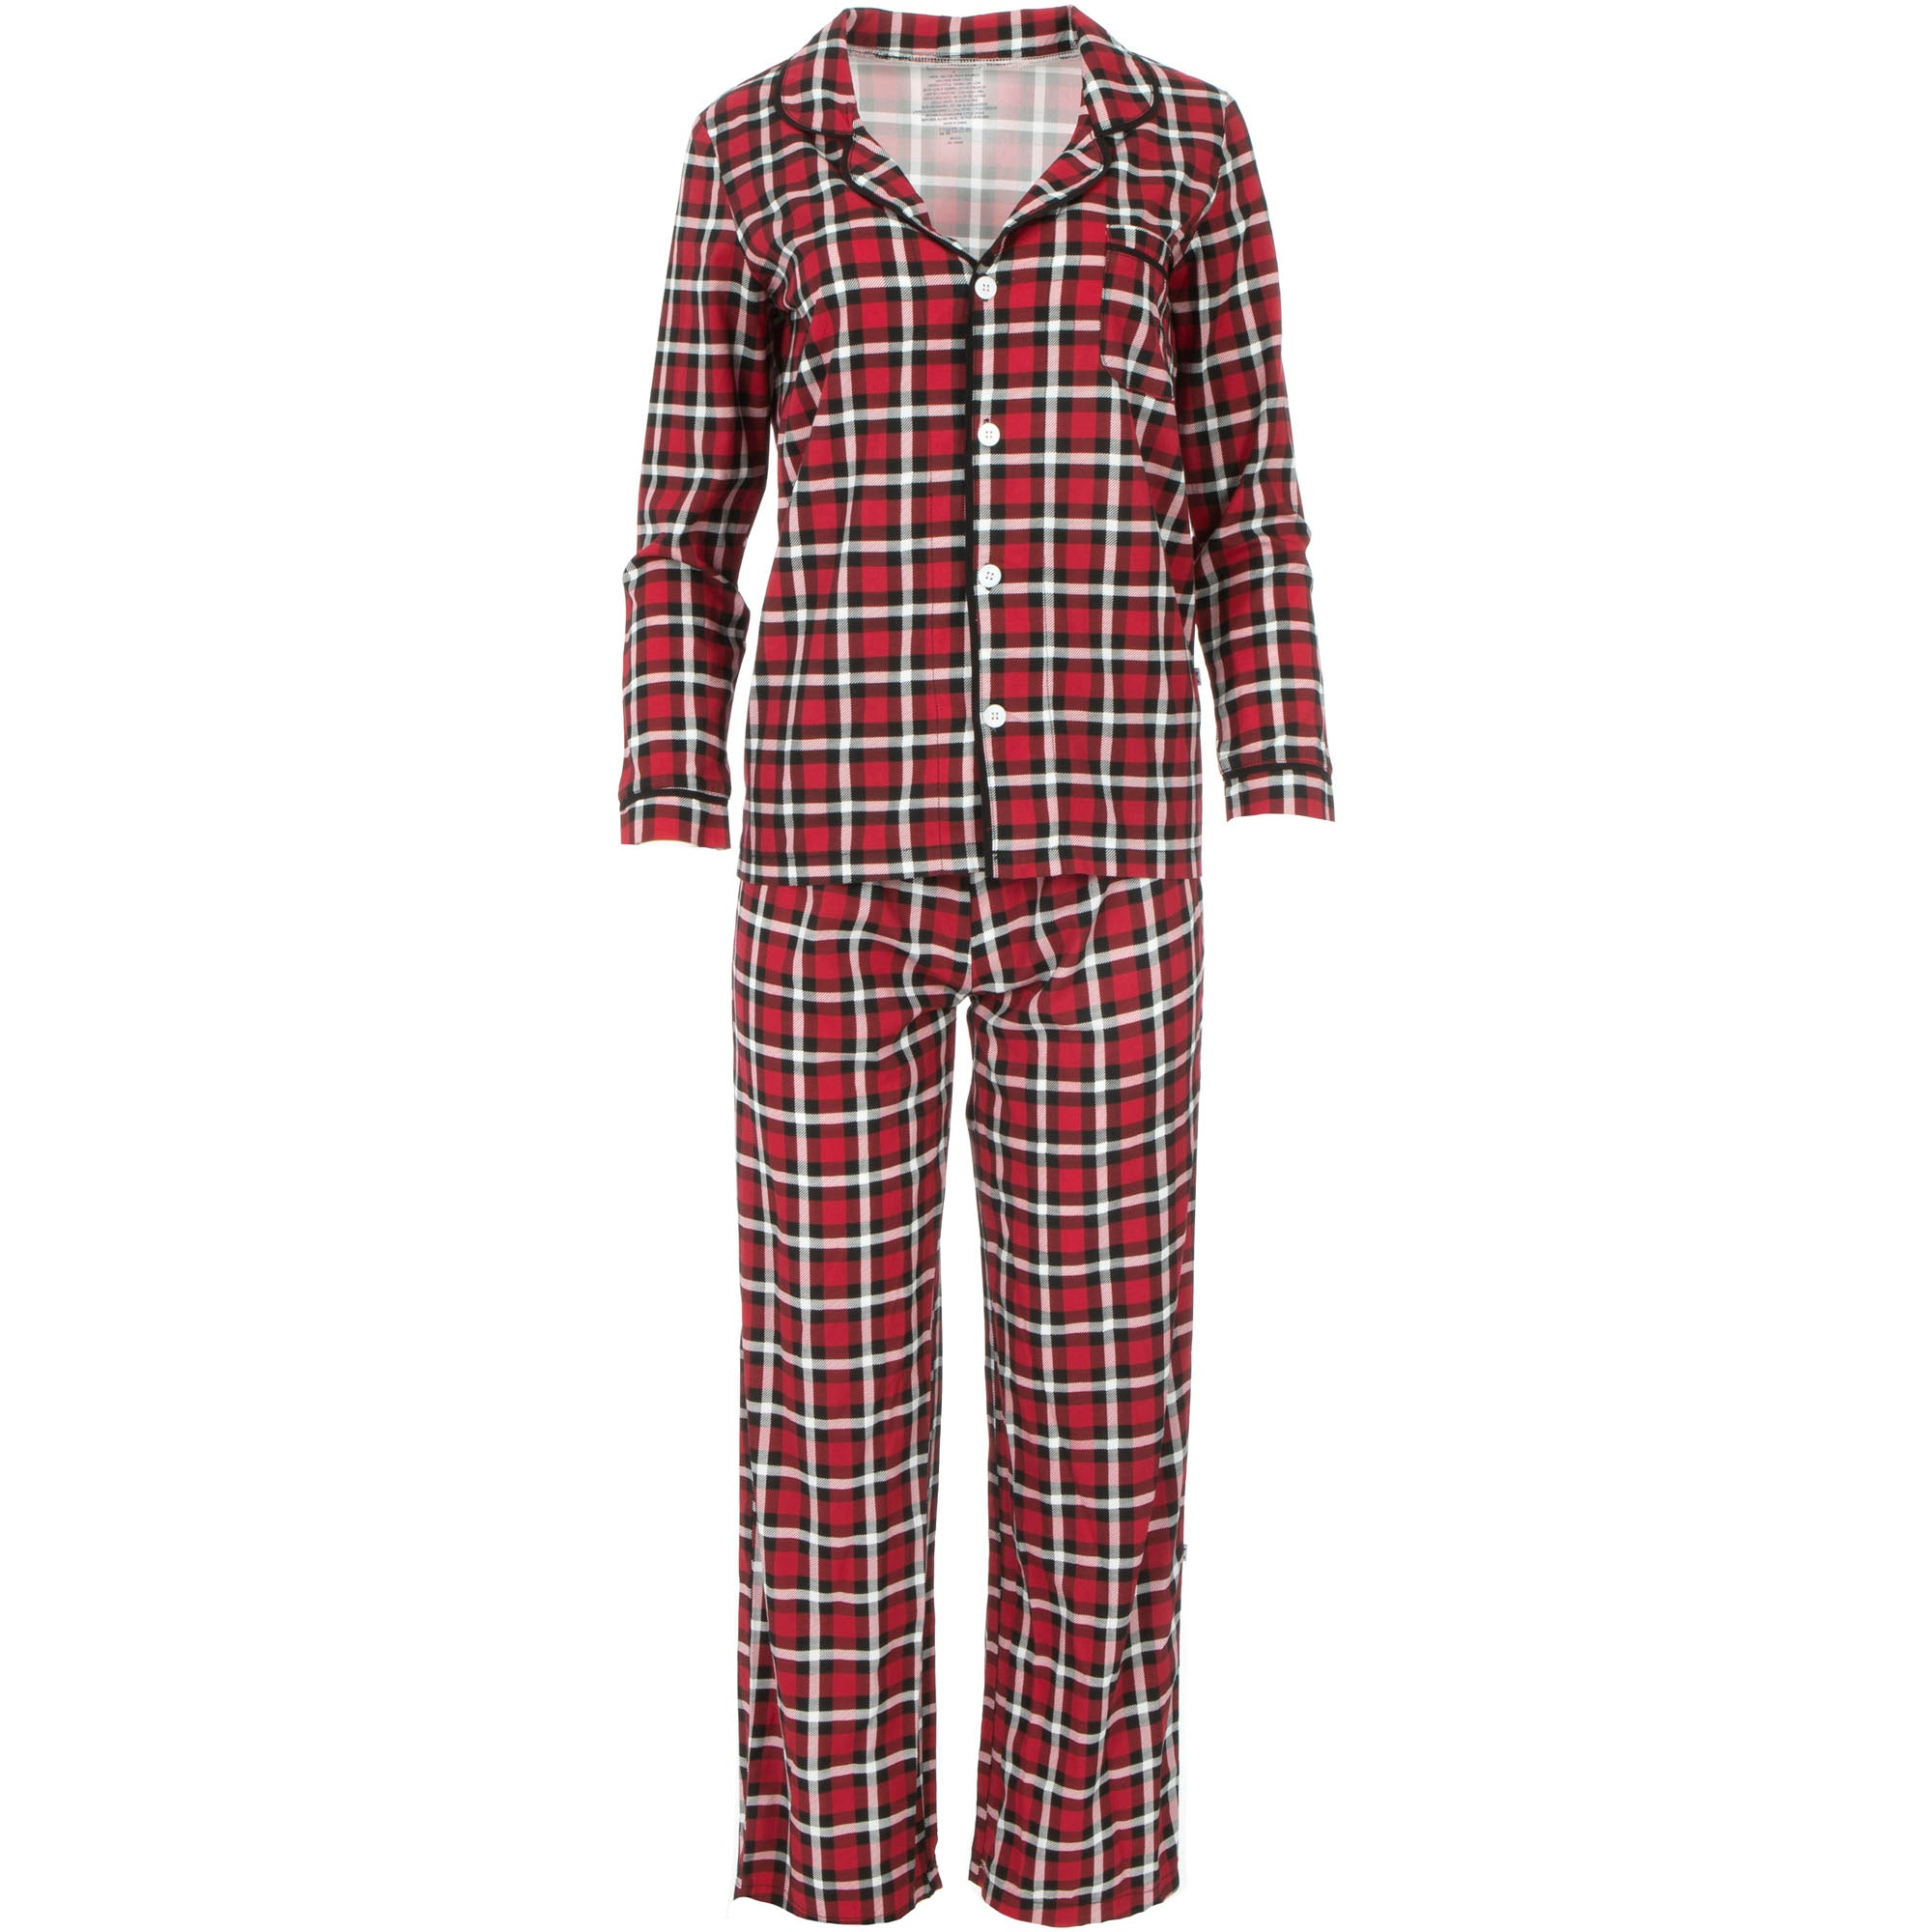 KicKee Womens Pajama Set - Holiday Plaid